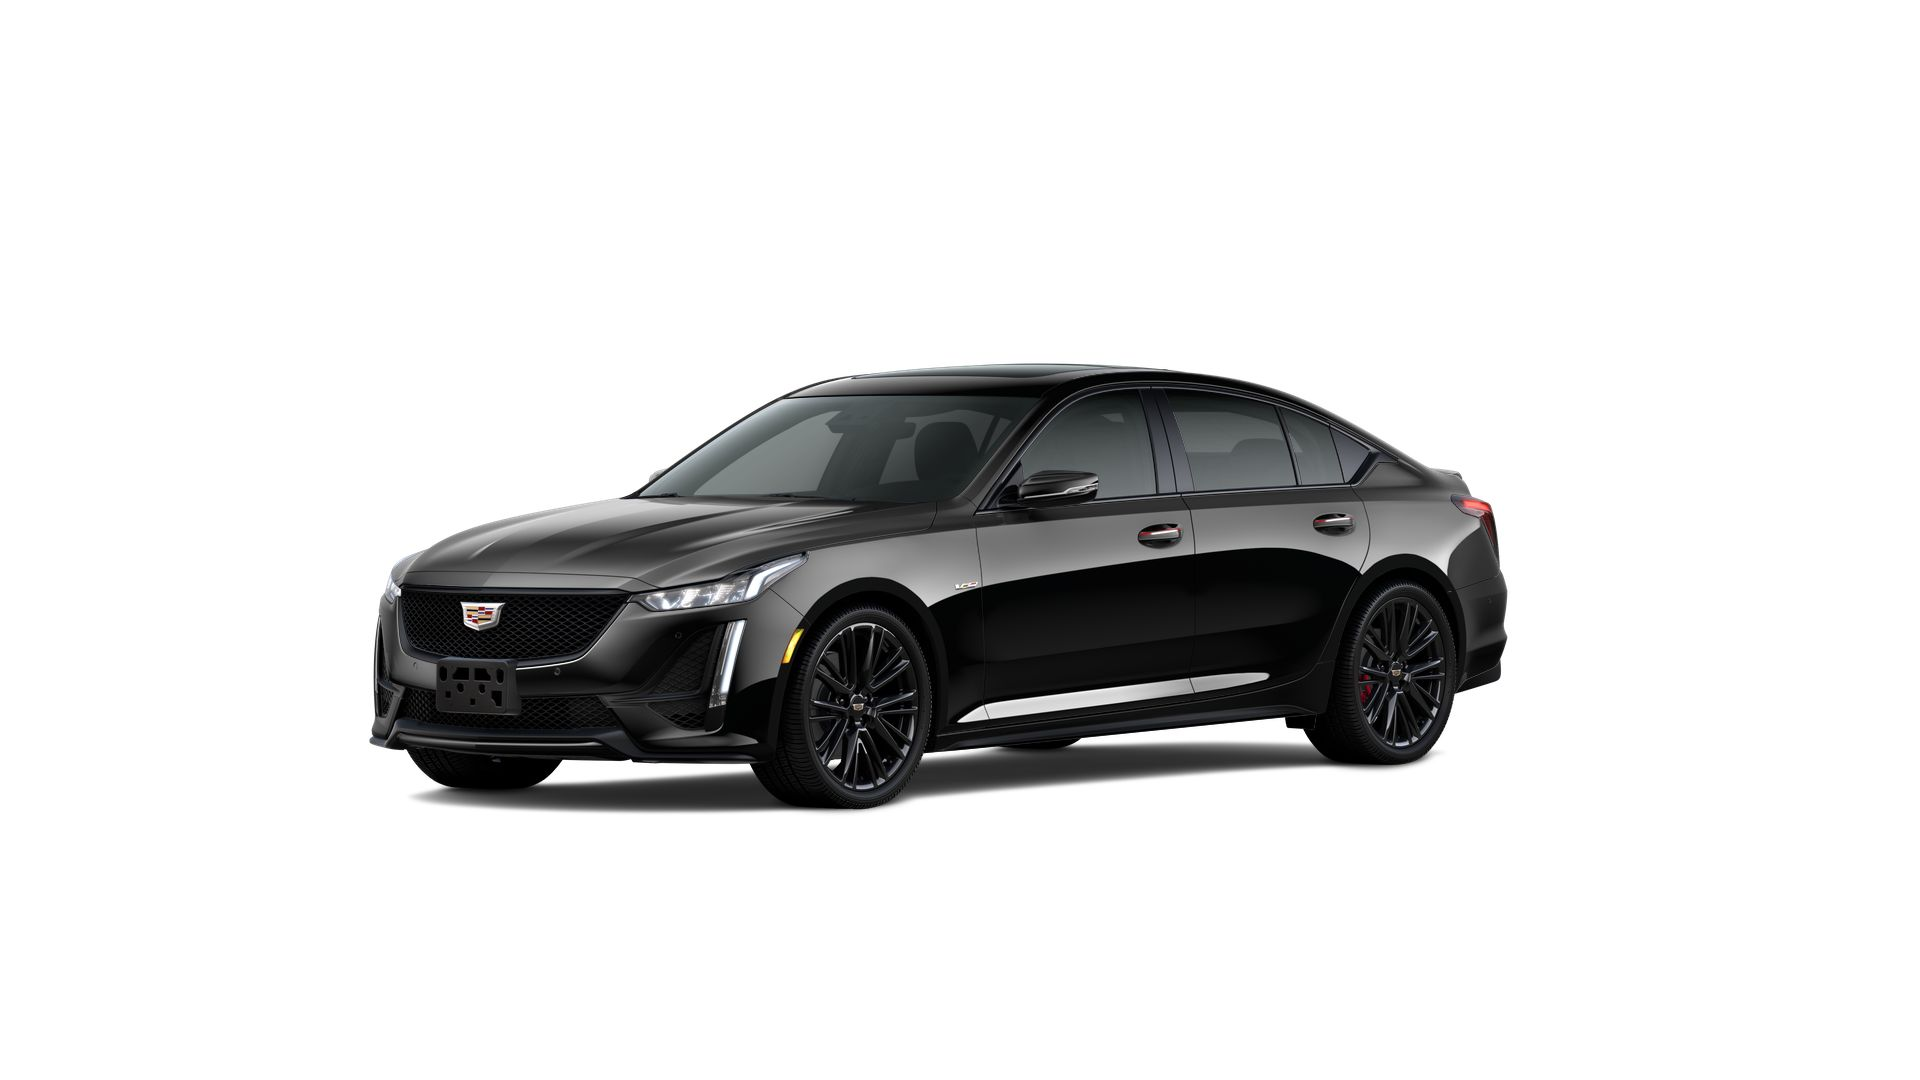 New 2021 Cadillac CT5 V-Series Sedan in Salt Lake City # ...